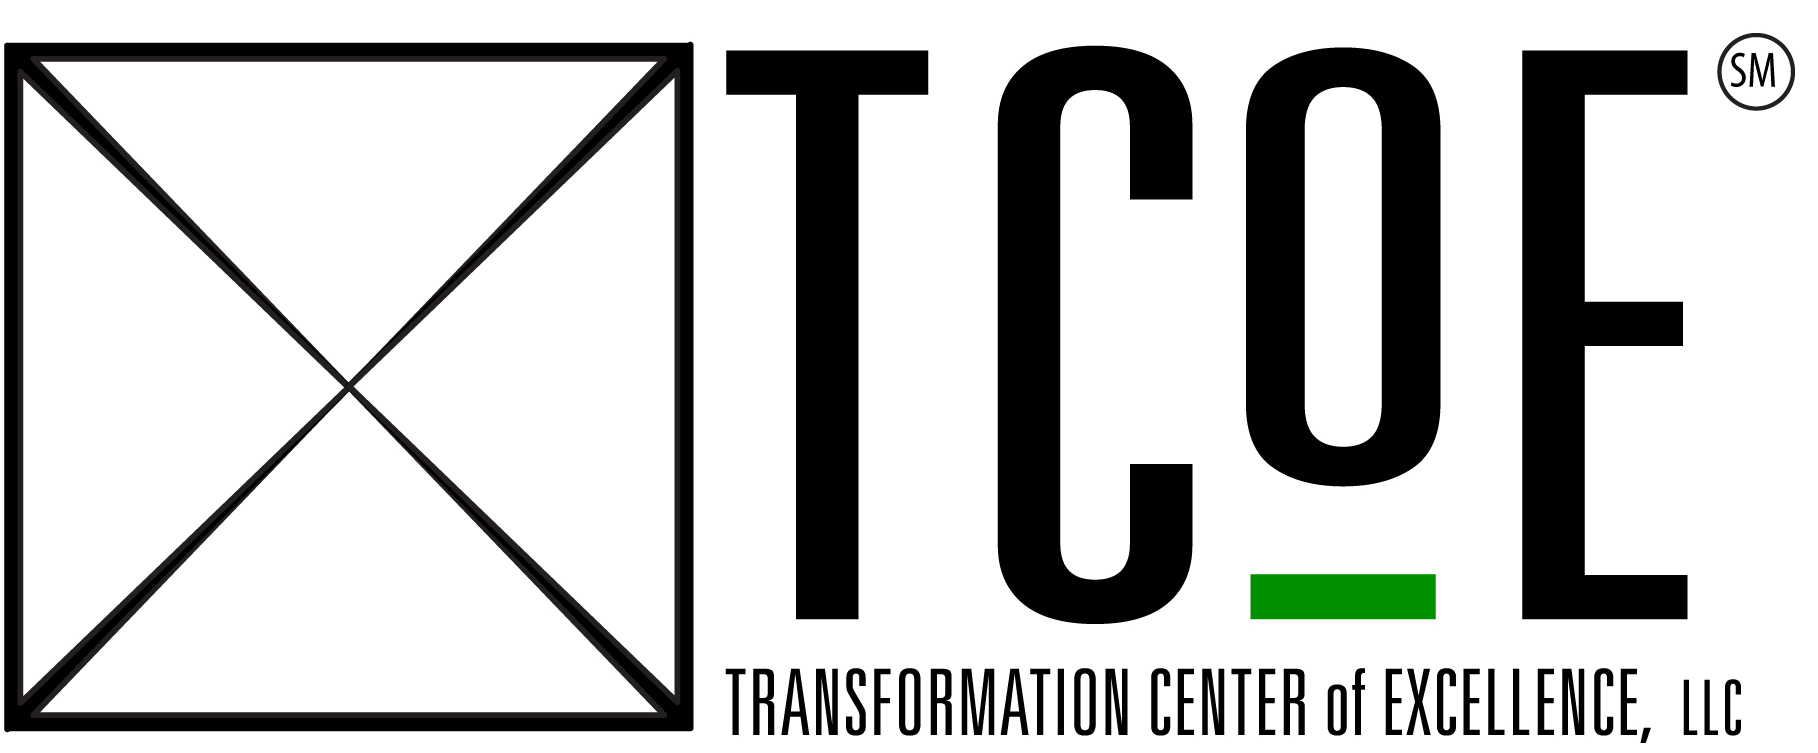 Transformation Center of Excellence